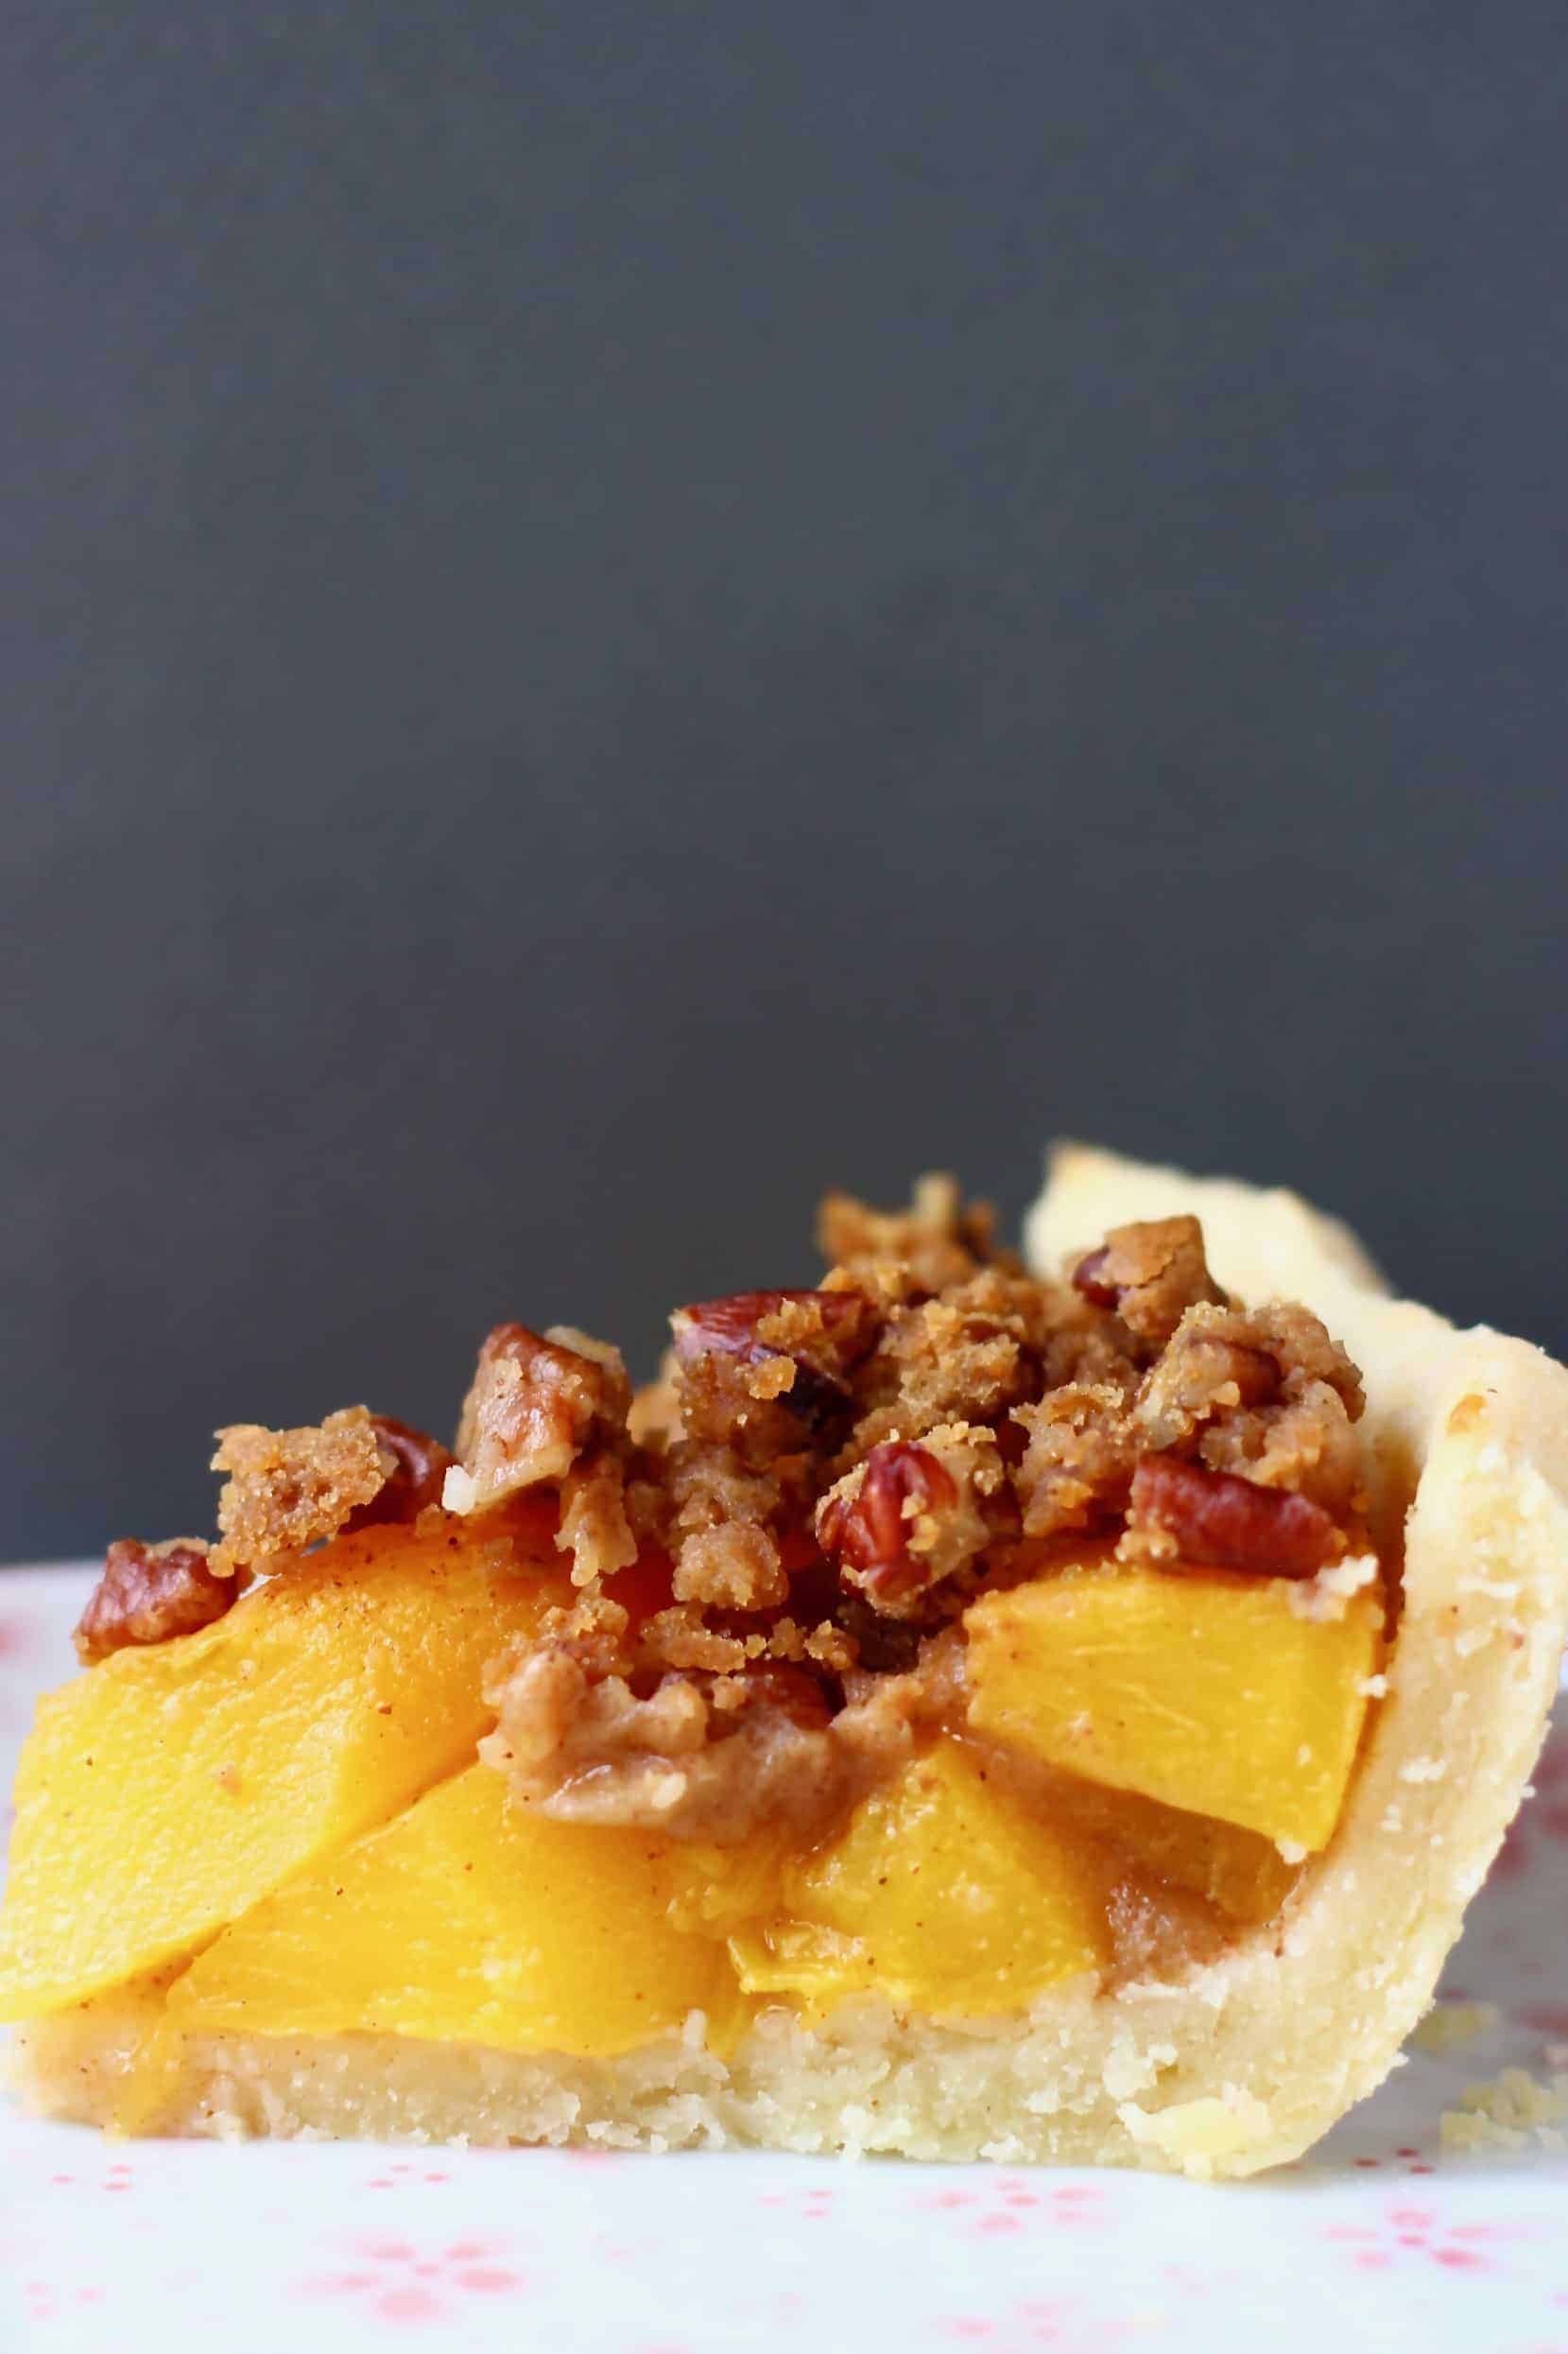 A slice of peach pie topped with brown crumble topping on a white plate